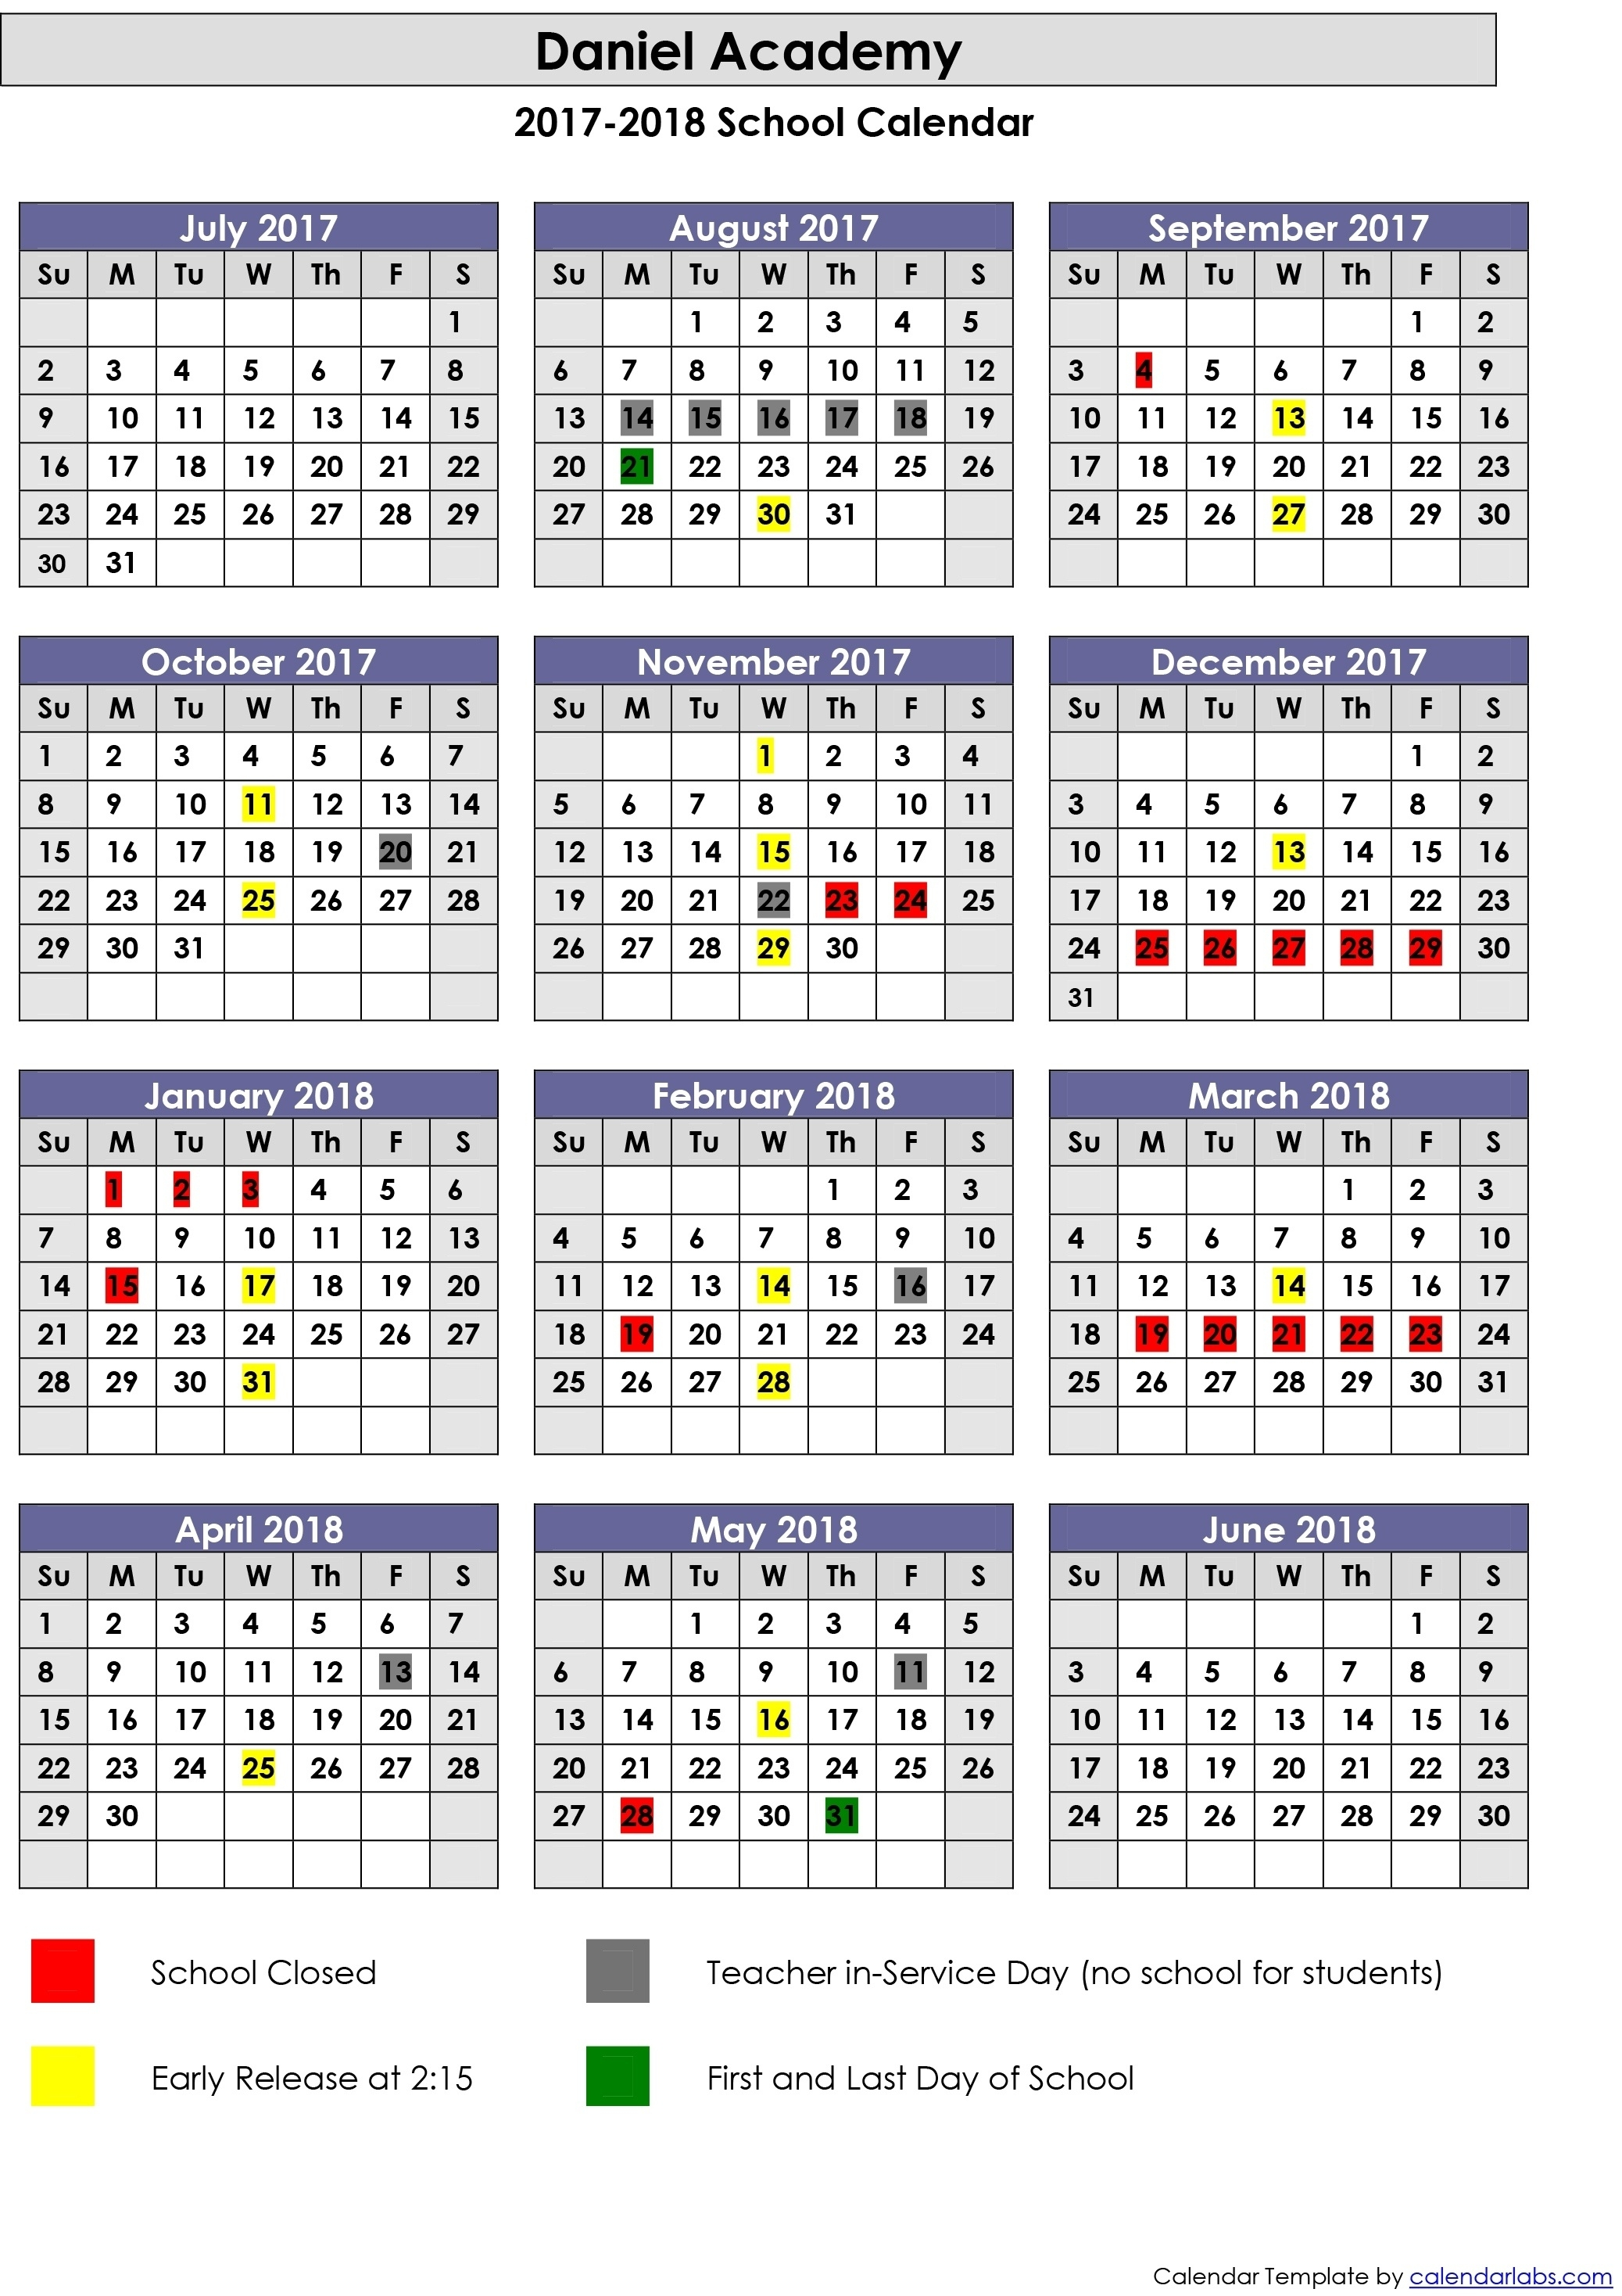 Exceptional School Calendar For Duval County • Printable Blank_School Calendar For Duval County